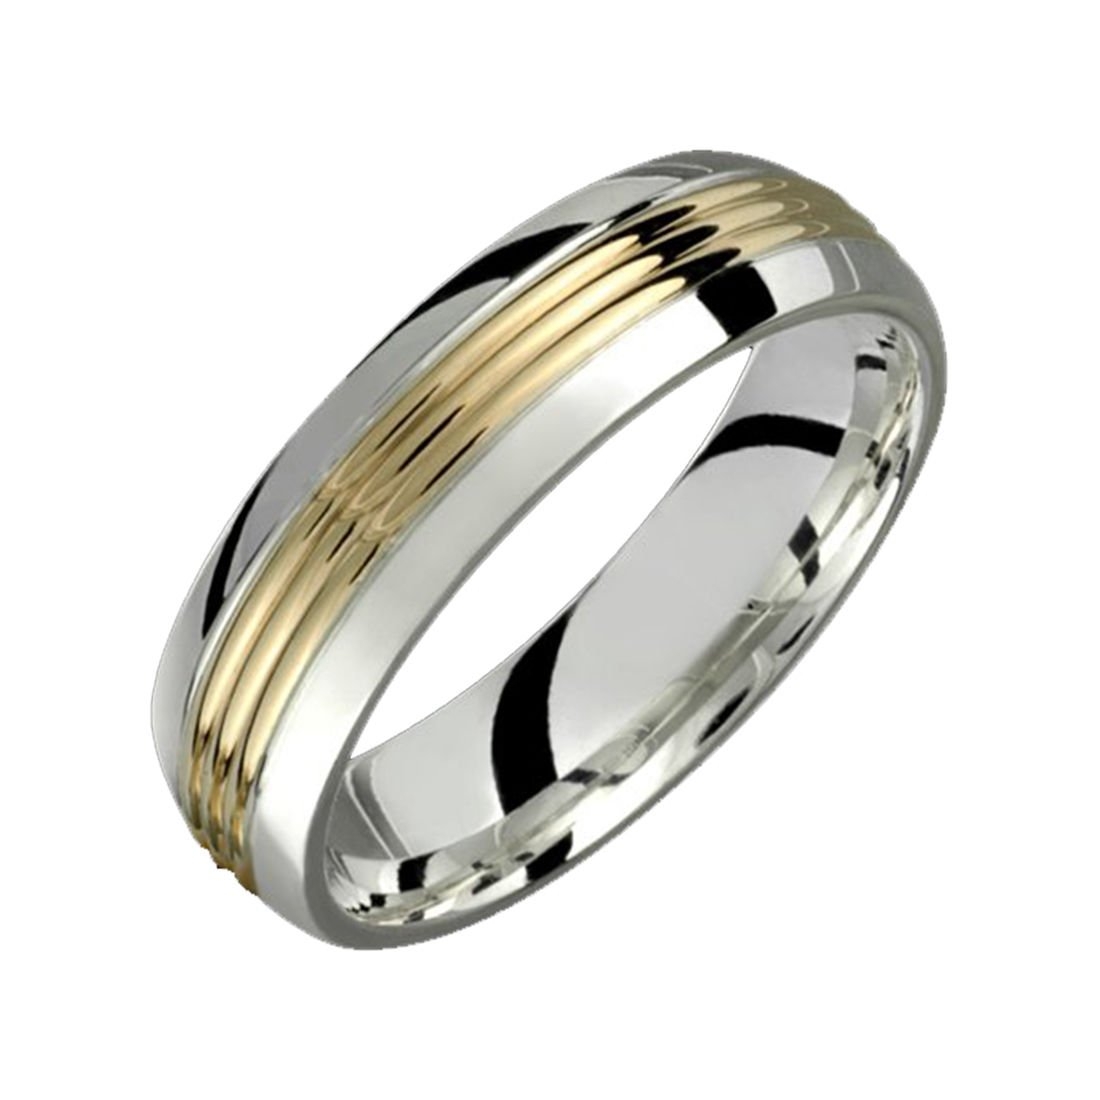 Alain Raphael 6 Millimeters Wide 2 Tone Ring .925 Sterling Silver and 10K Yellow Gold Wedding Band